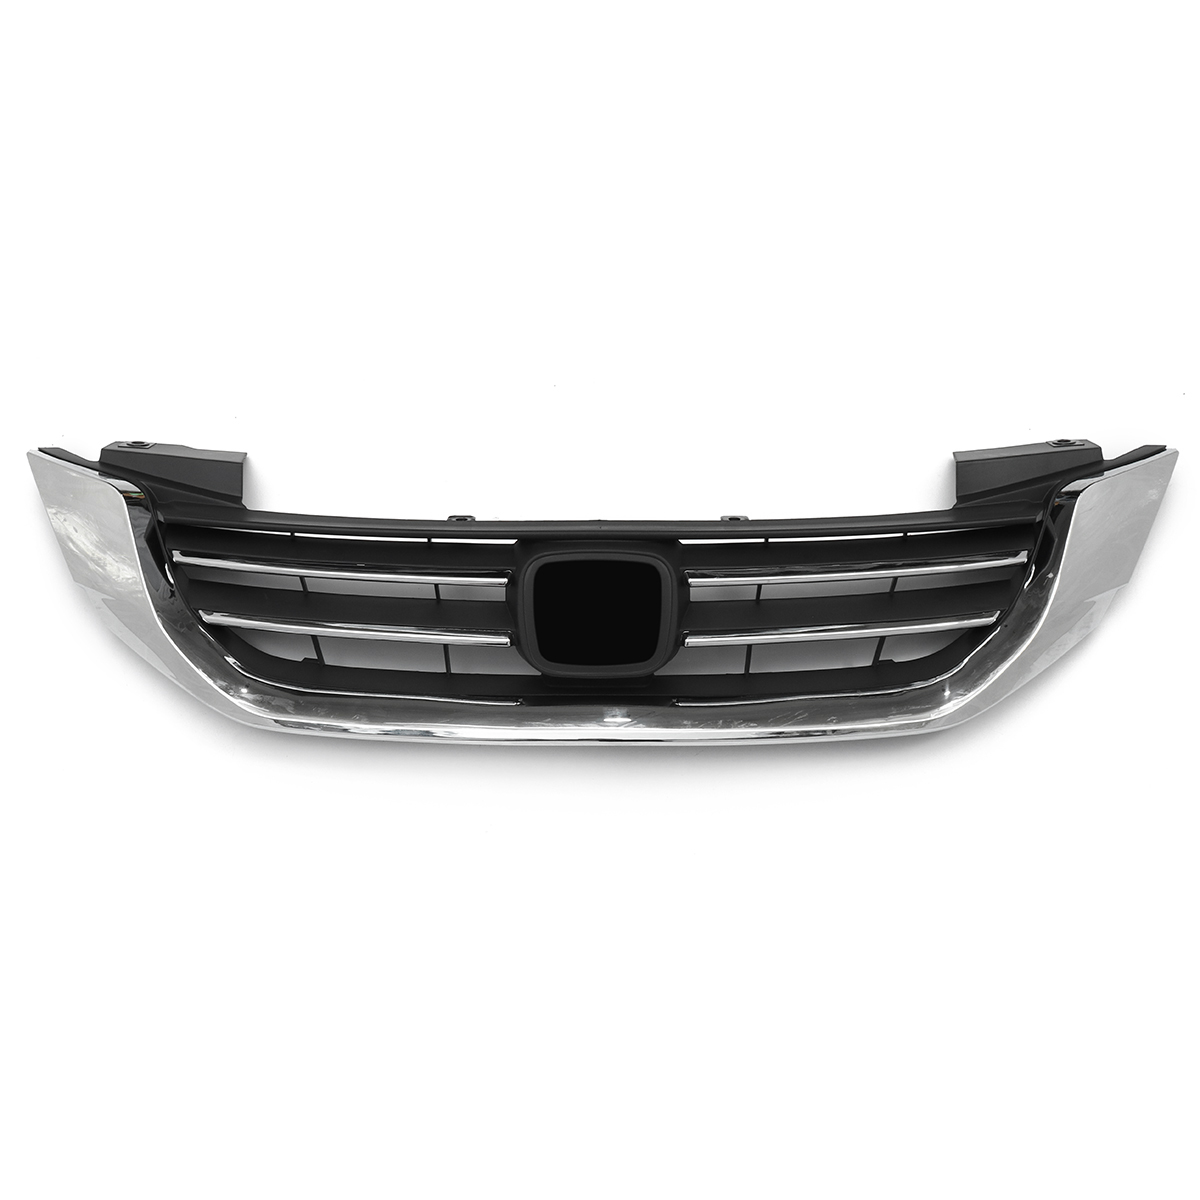 Front Bumper Mesh Hood Upper Frill Chrome Grille For Accord 2013 2014 2015 PY